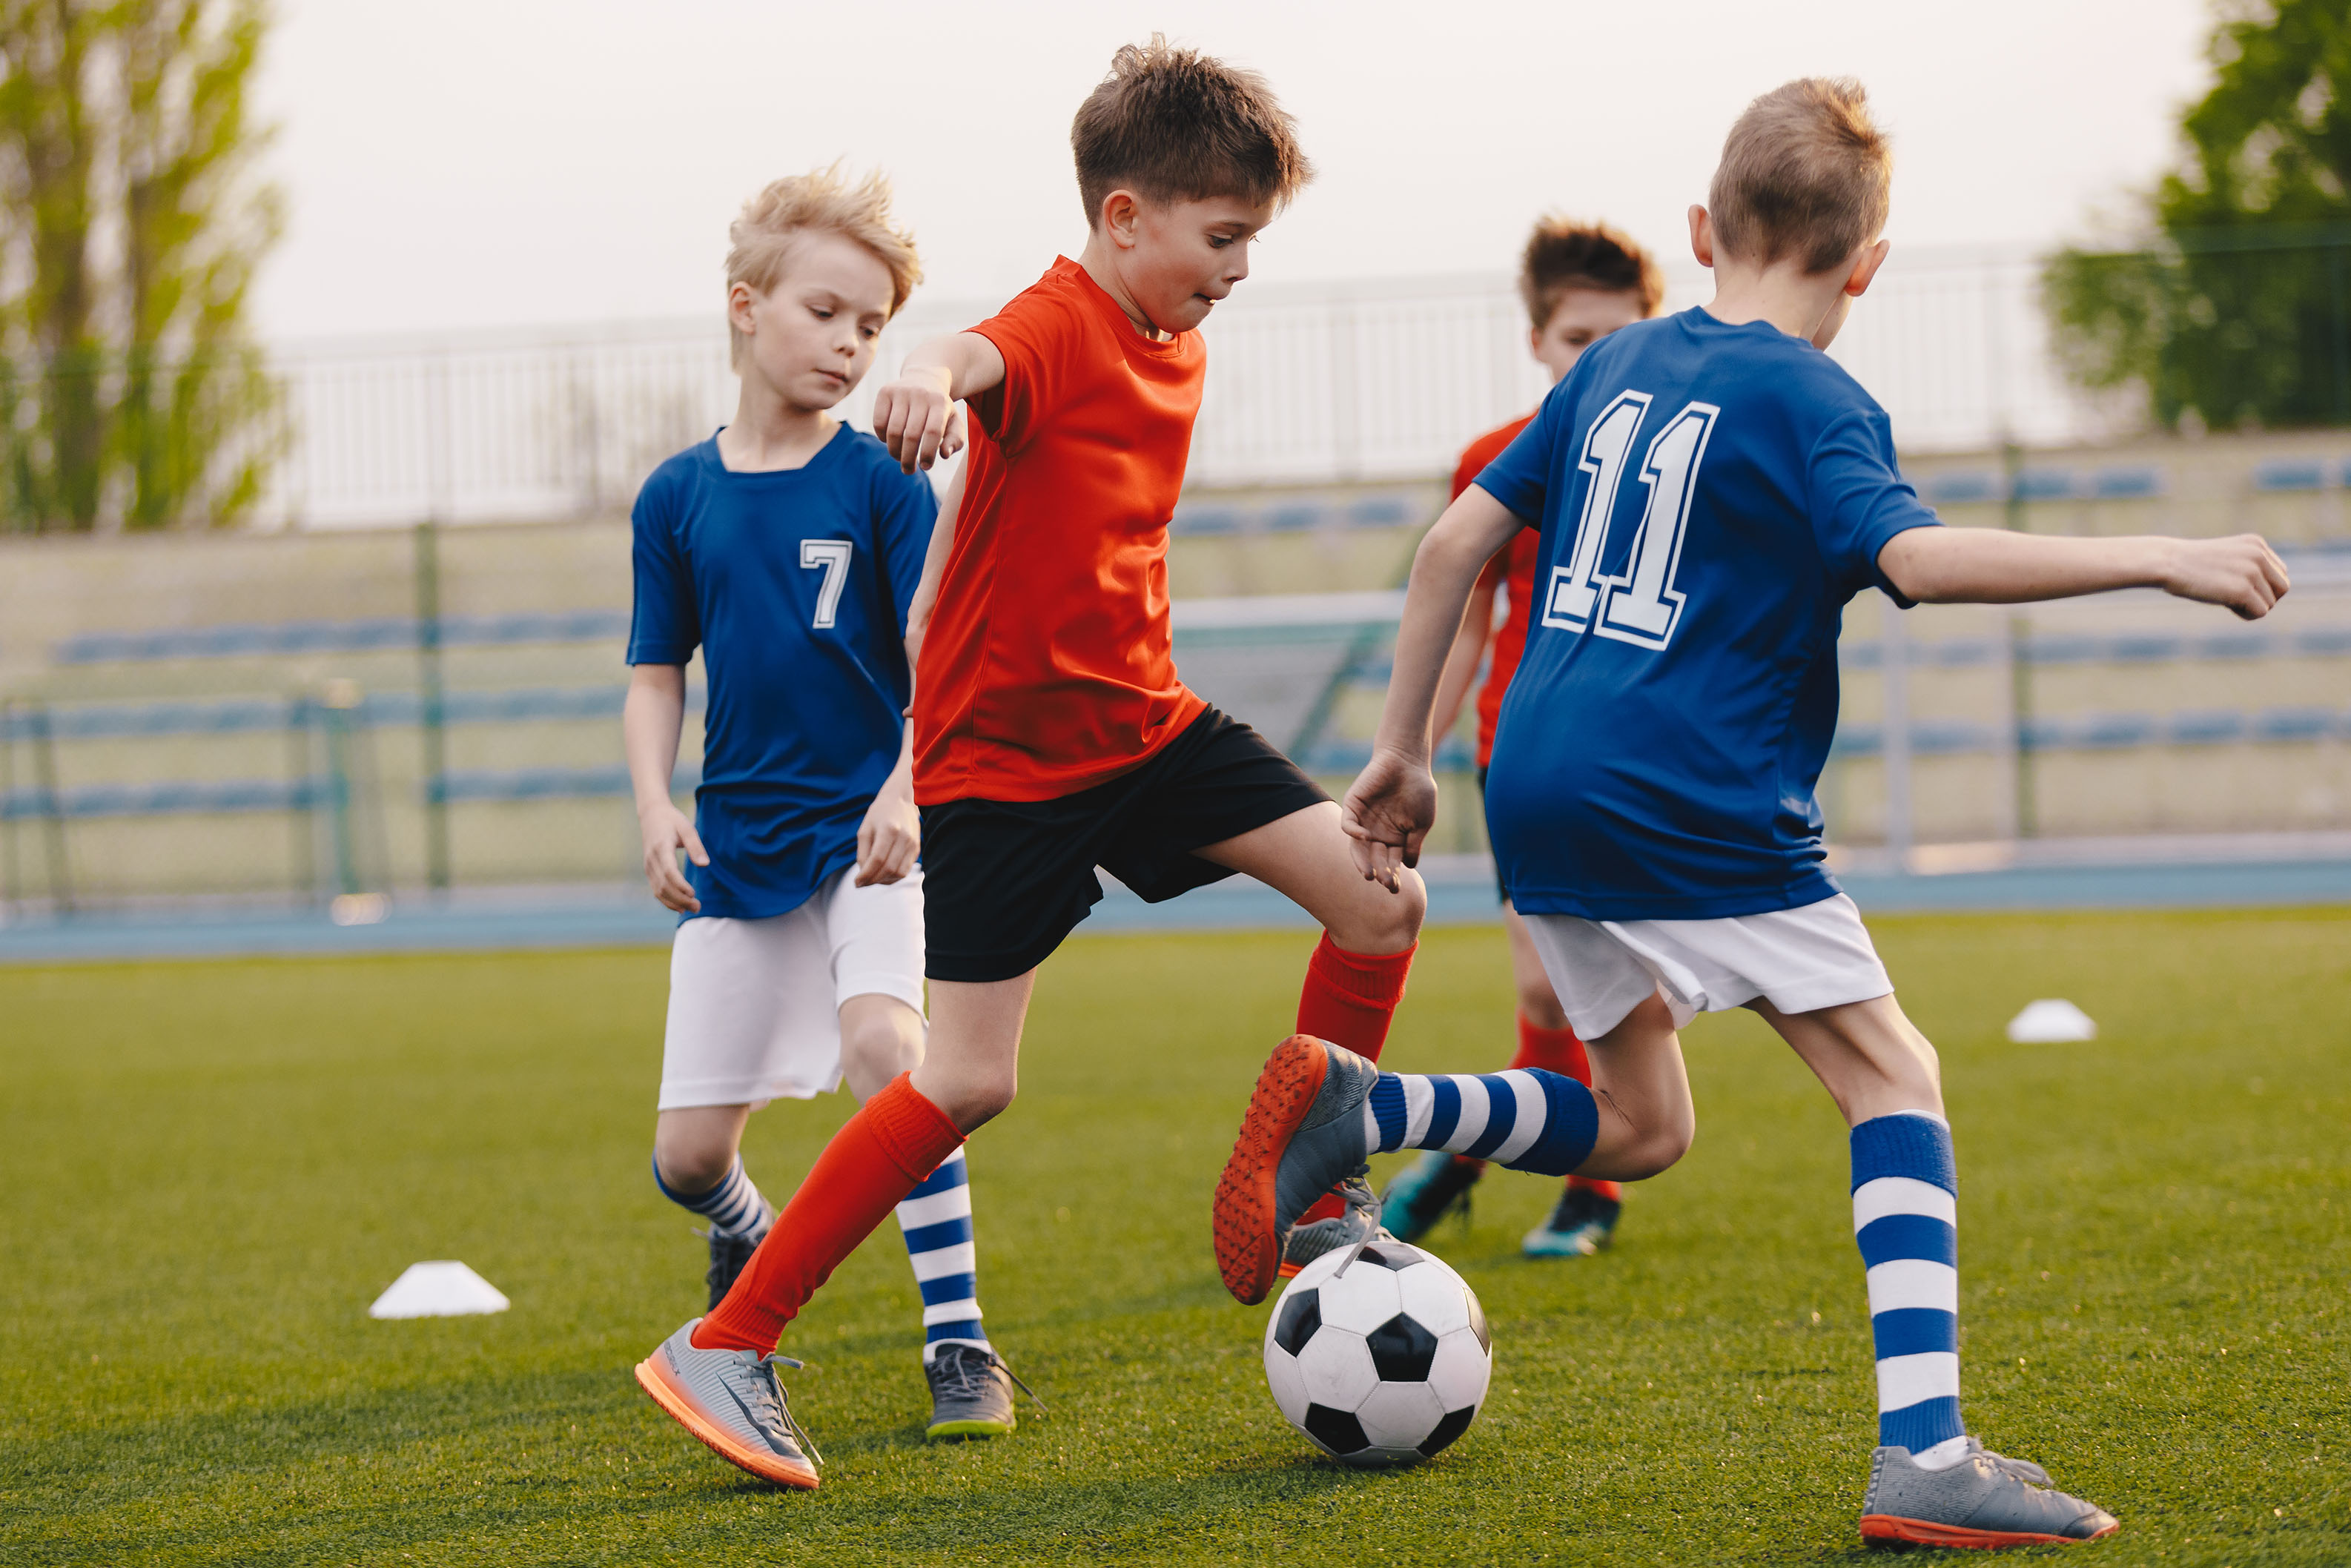 Football party image